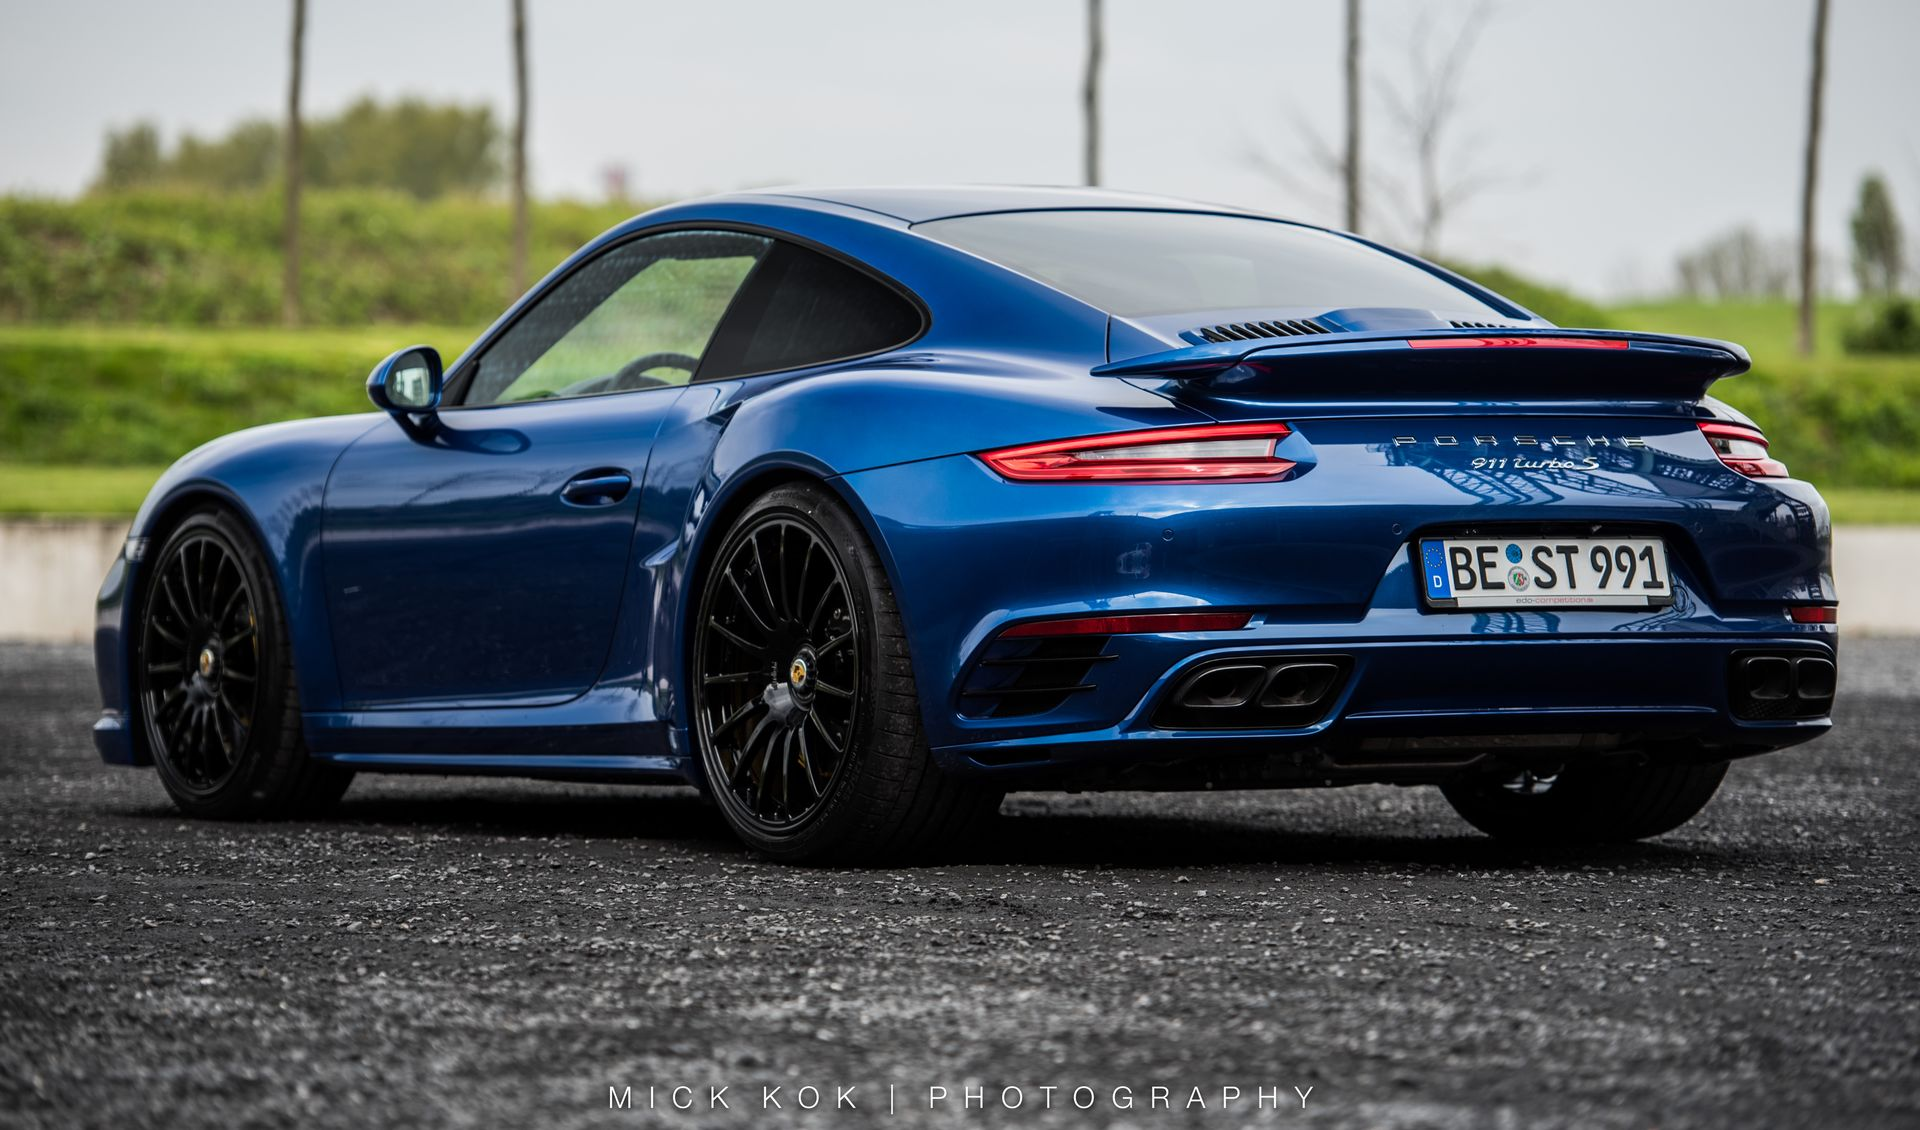 e84ce62bddcf 2017 Porsche 911 Turbo S Blue Arrow By Edo Competition | Top Speed